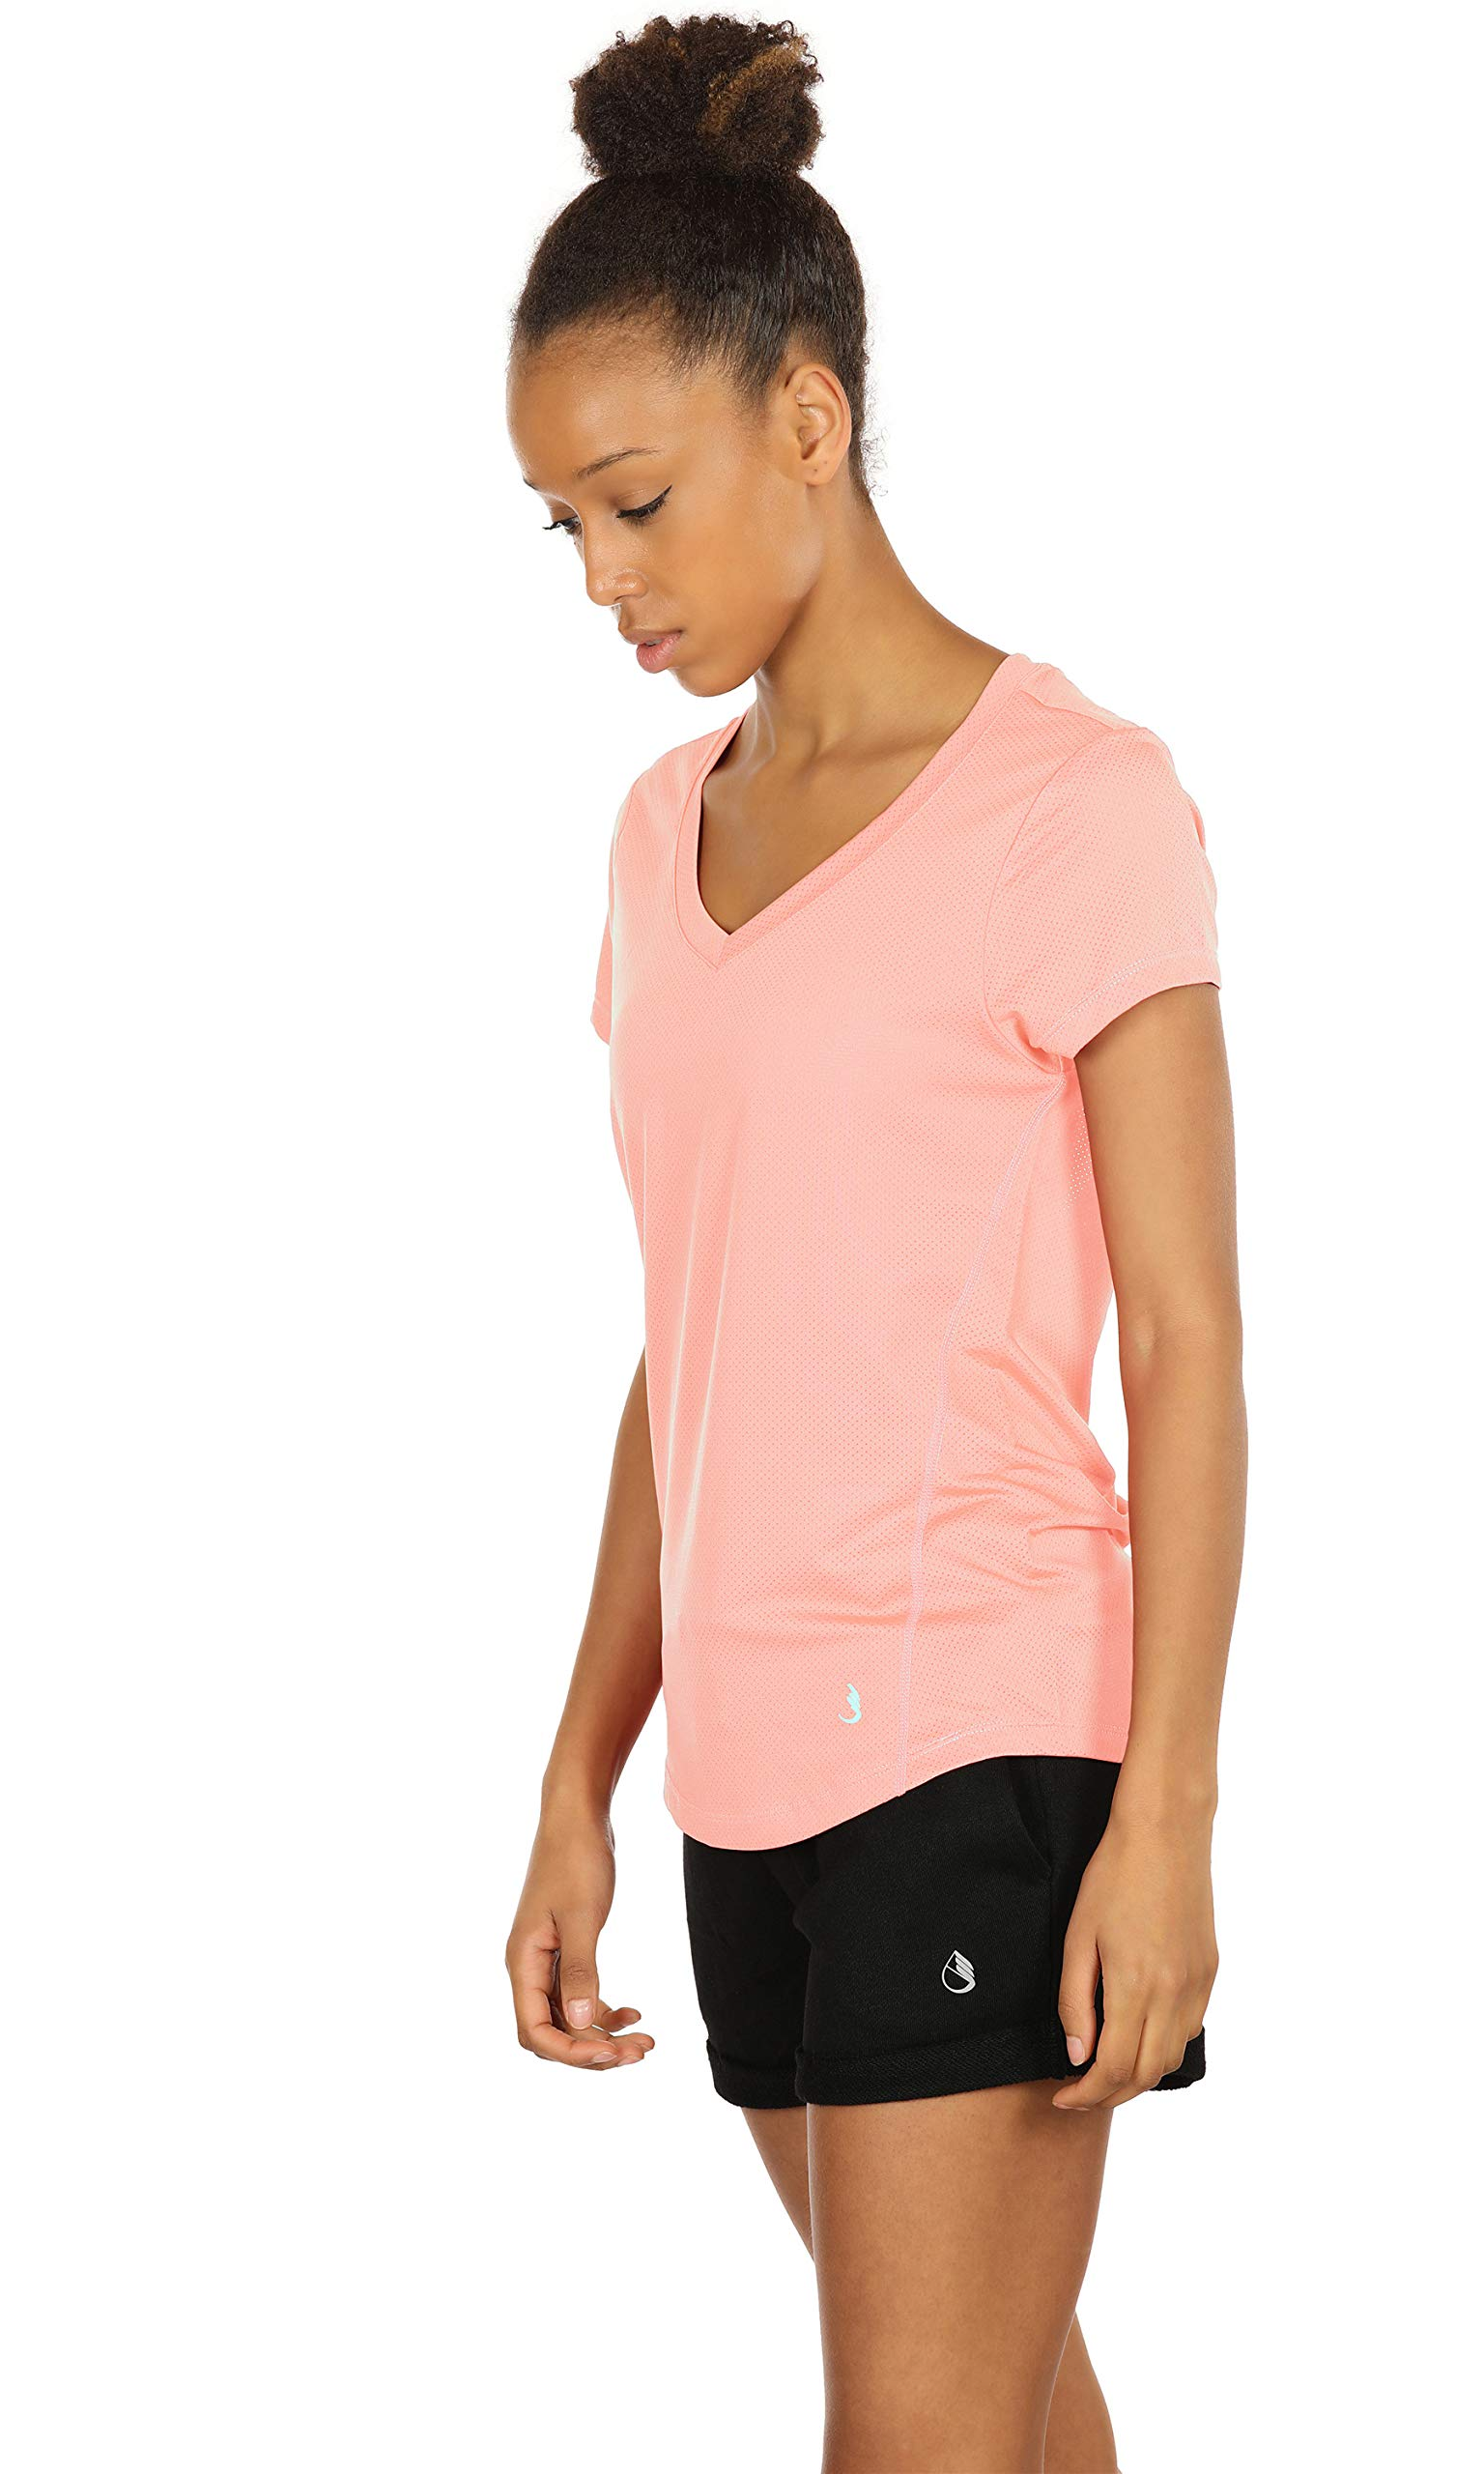 icyZone Activewear Fitness Yoga Tops Workout V Neck Open Back T-Shirts for Women (S, Pale Blush)